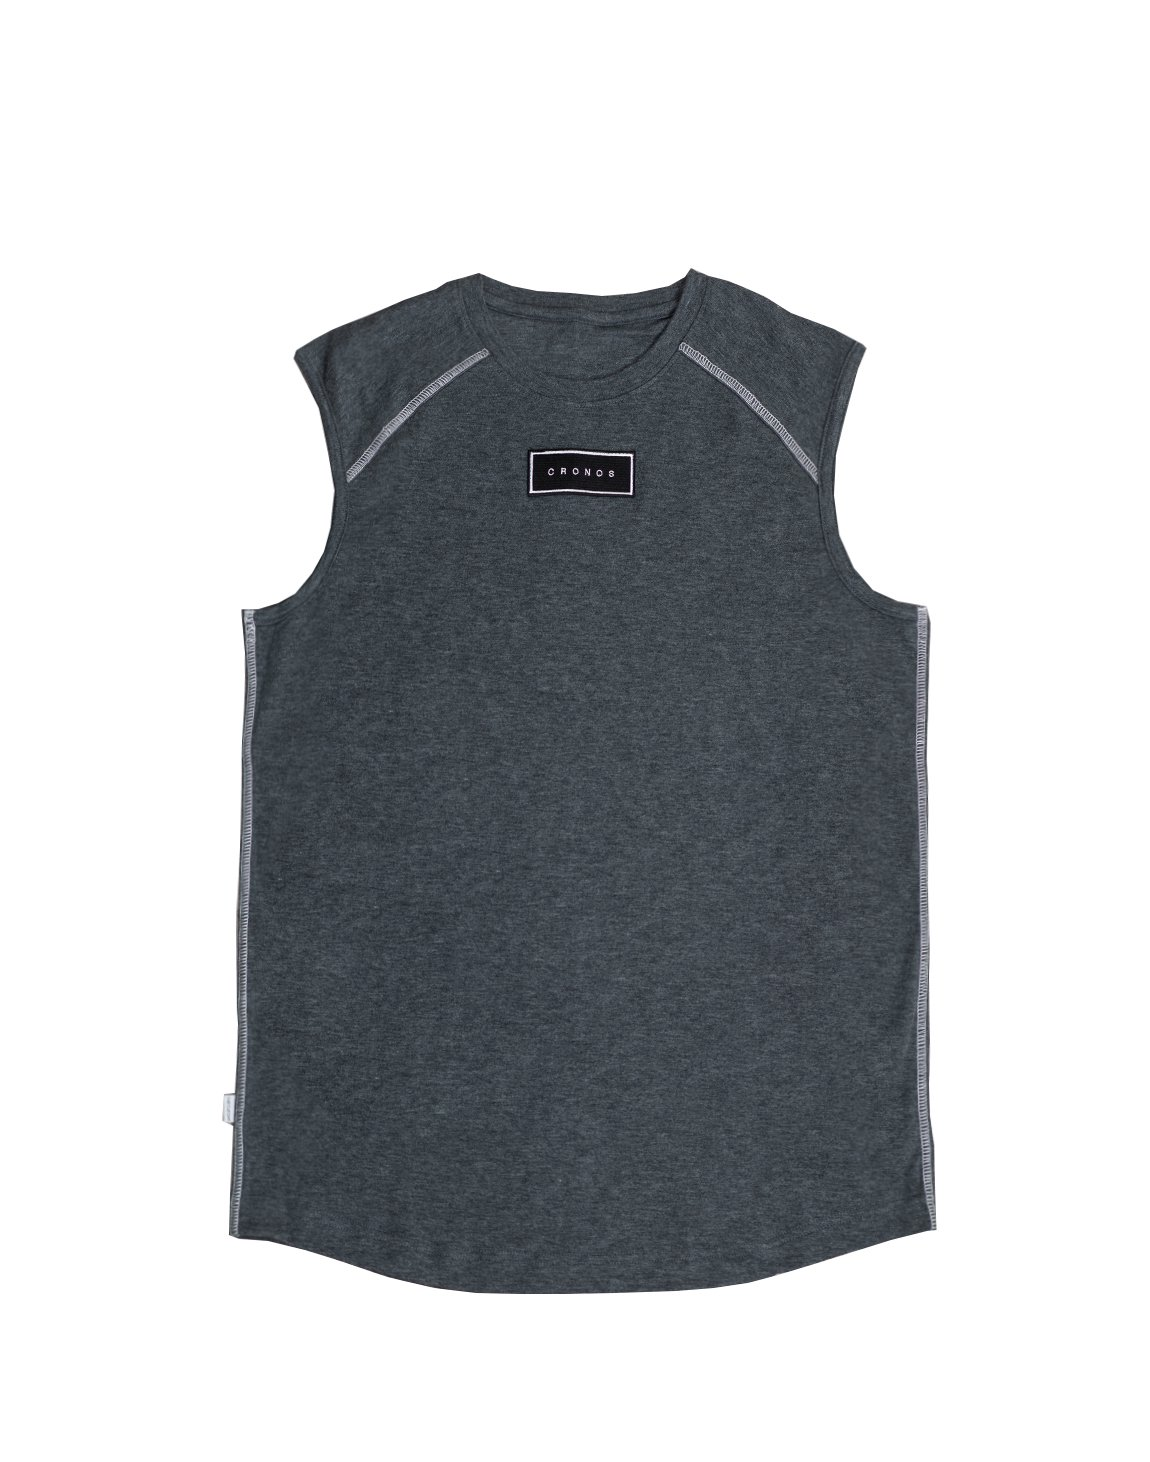 <img class='new_mark_img1' src='https://img.shop-pro.jp/img/new/icons55.gif' style='border:none;display:inline;margin:0px;padding:0px;width:auto;' />FRONT PATCH LOGO SLEEVELESS【C.GRAY】